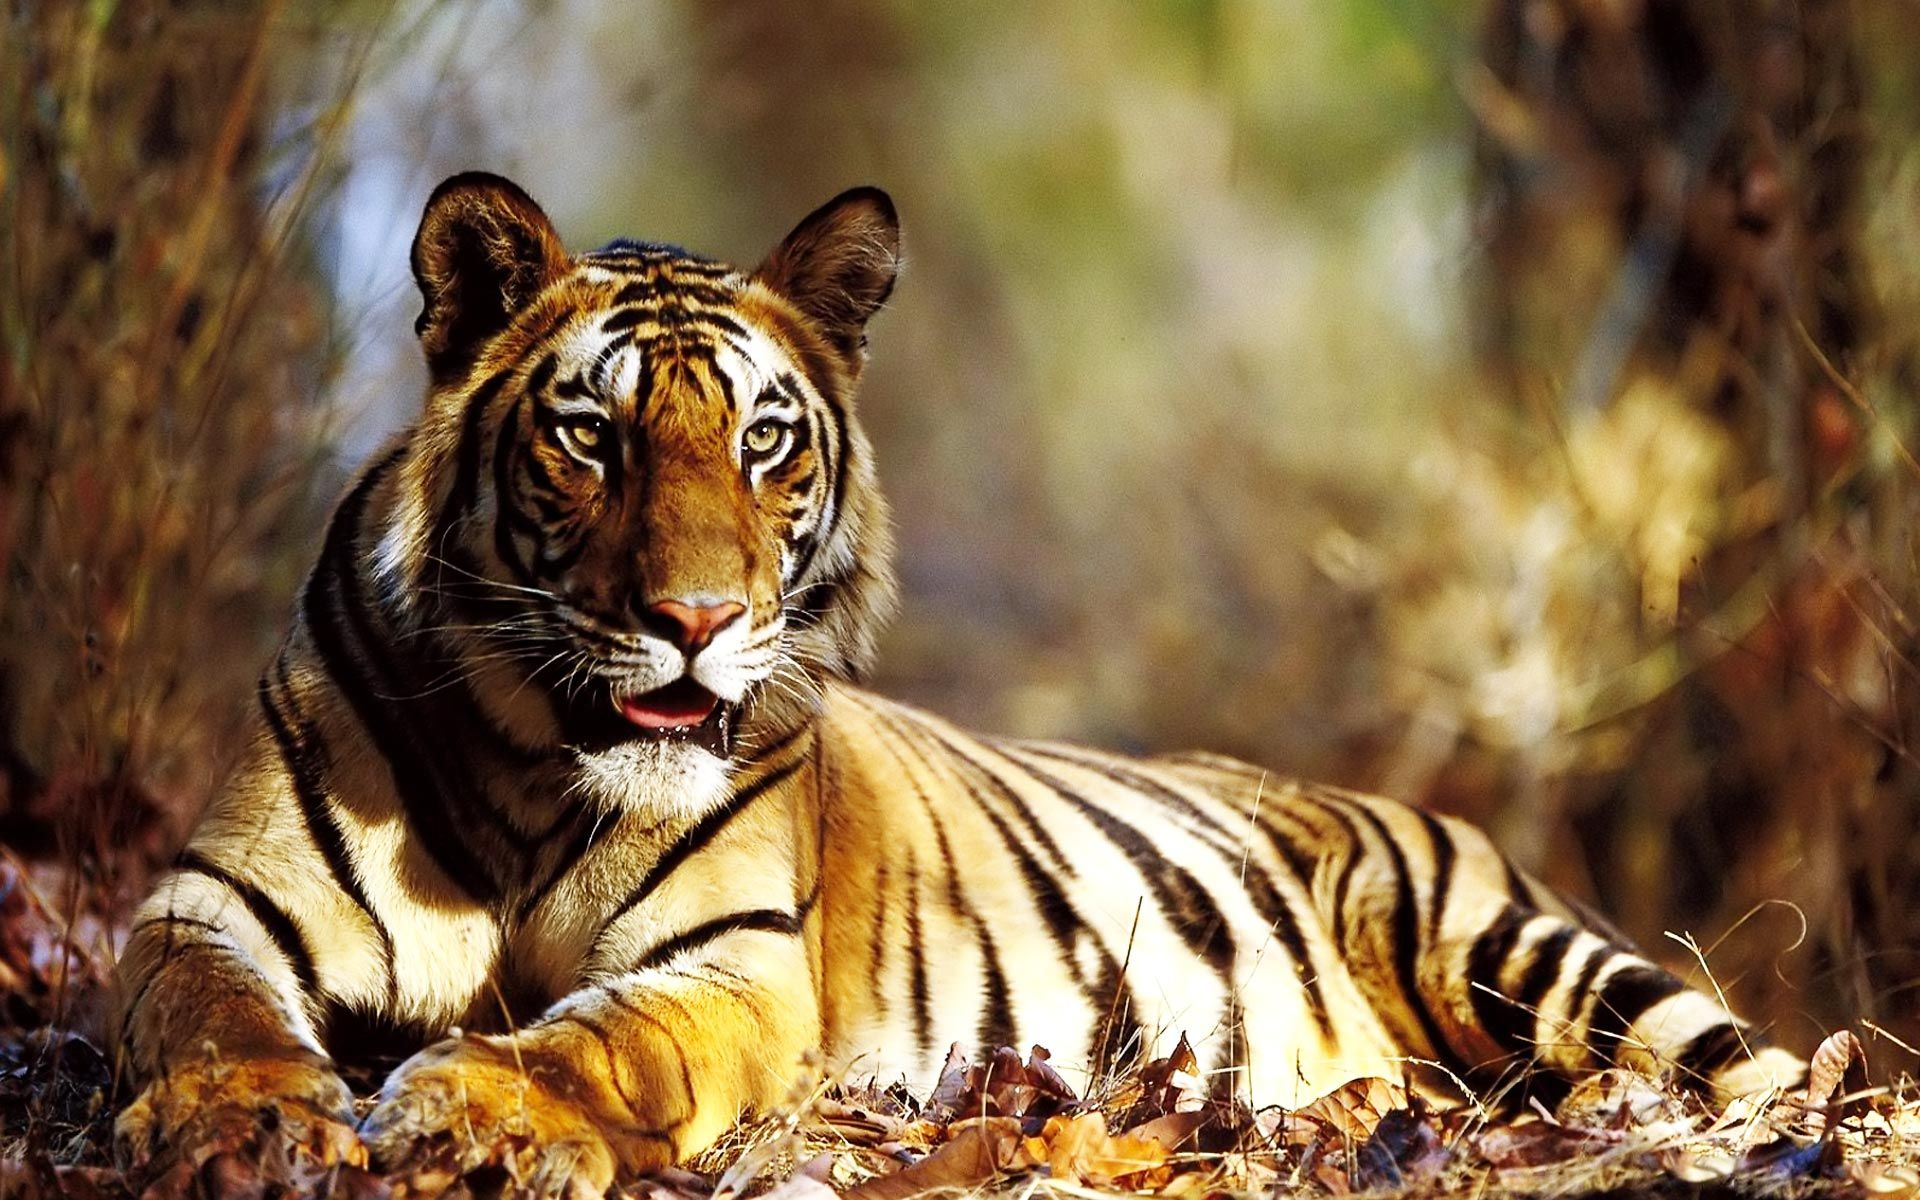 tiger hd wallpapers full high quality new backgrounds | tiger